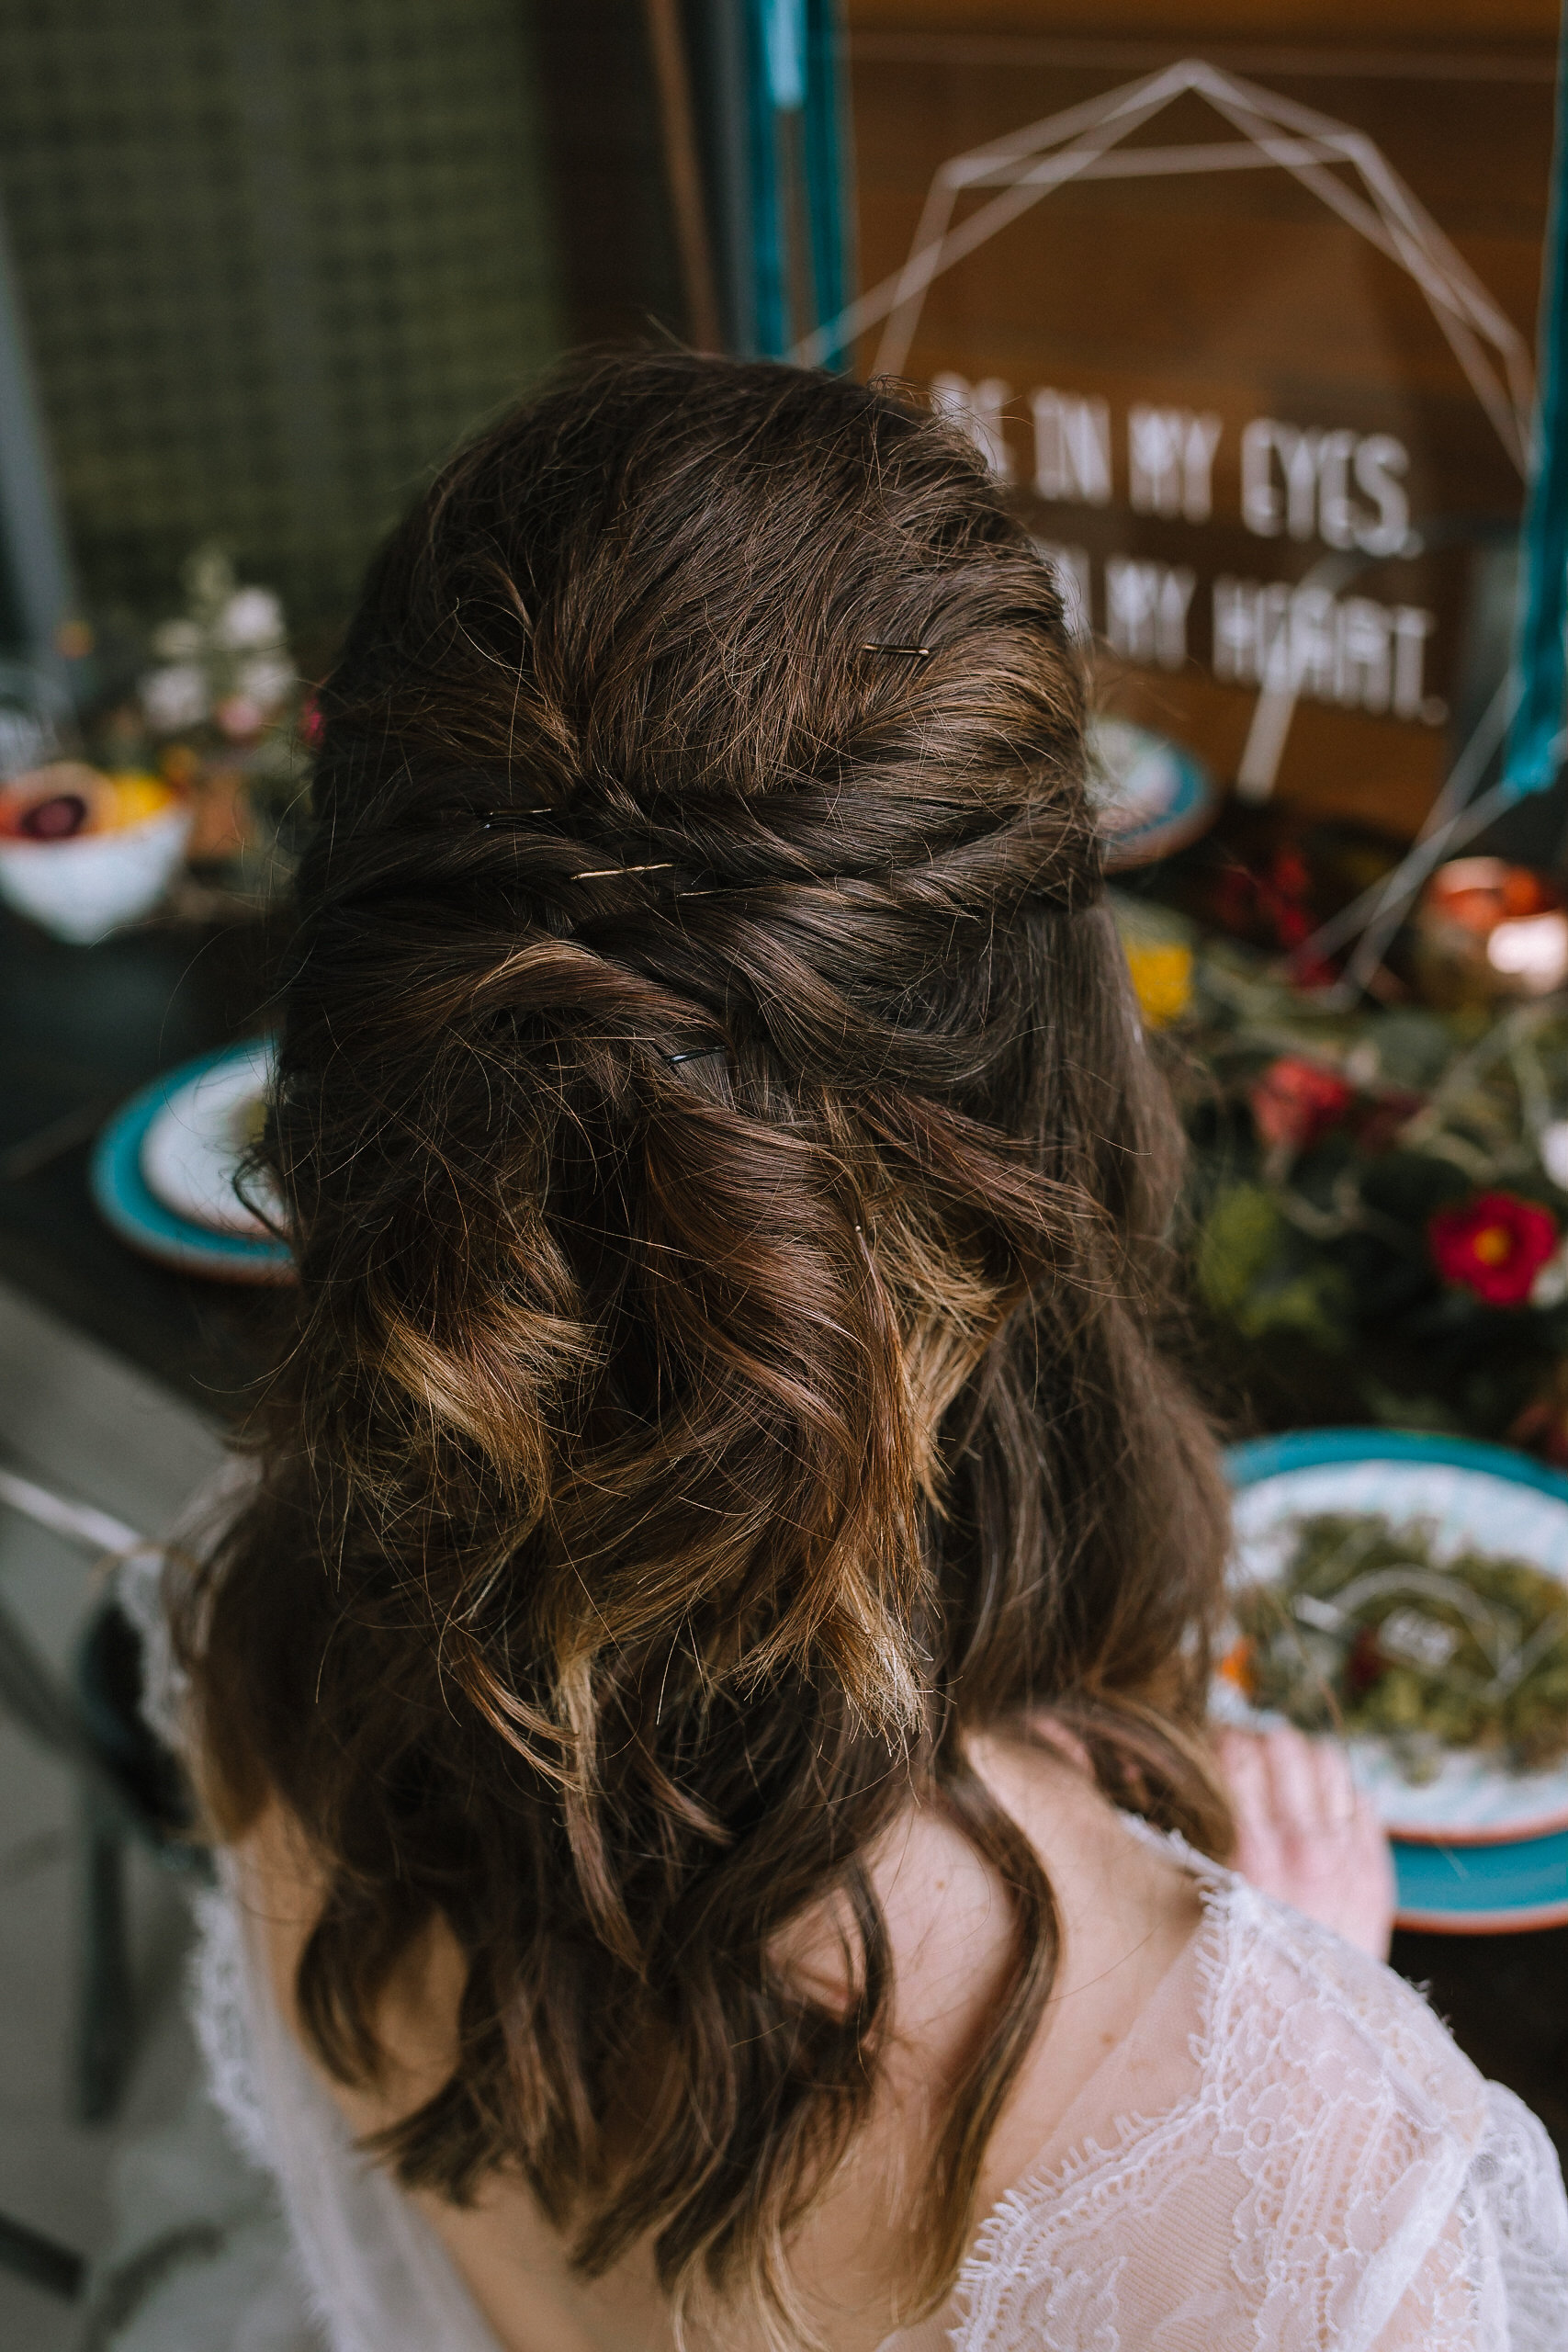 Boho bride wedding hair for fall vintage boho styled shoot designed by exhale events. Get inspired by these gorgeous wedding details at exhale-events.com!